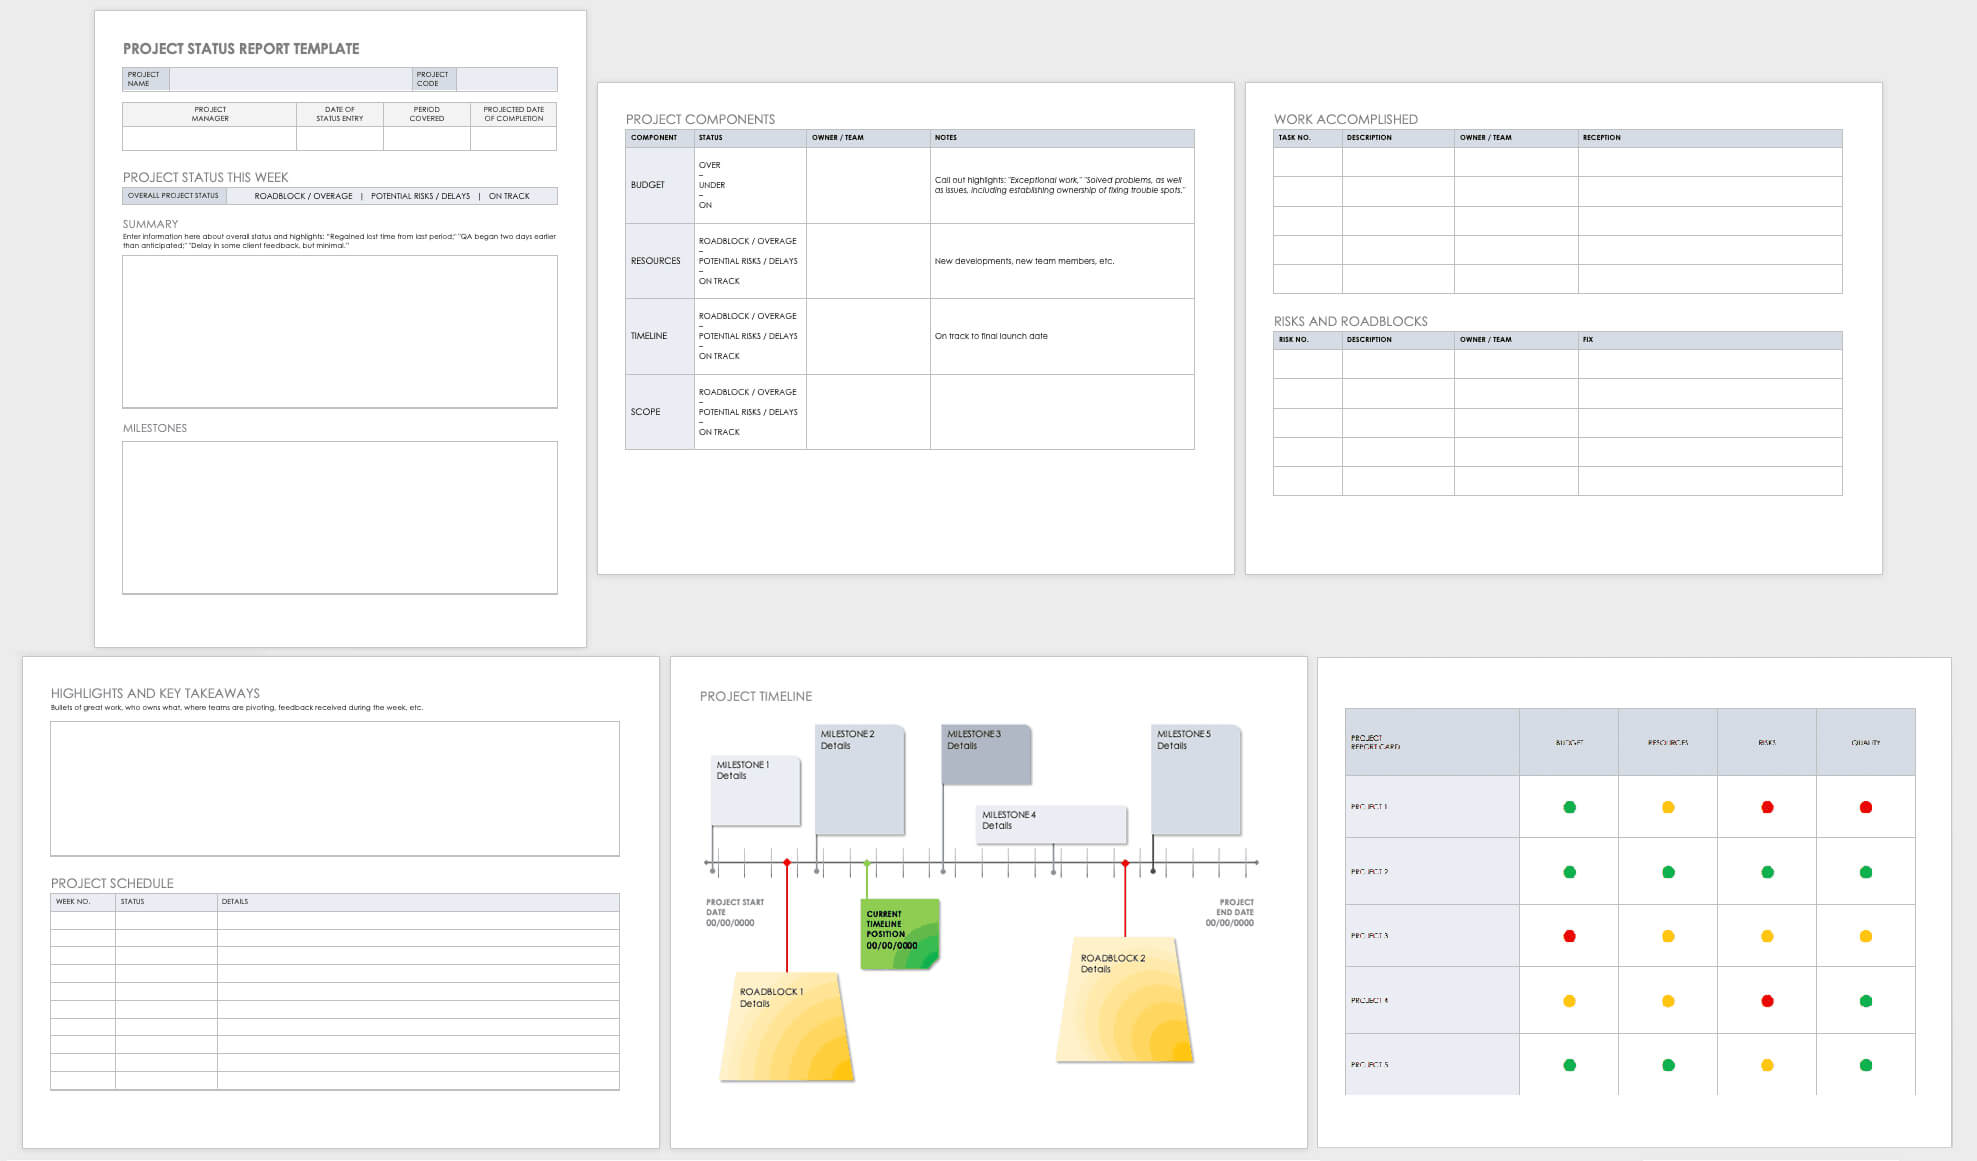 Free Project Report Templates | Smartsheet Inside It Support Report Template